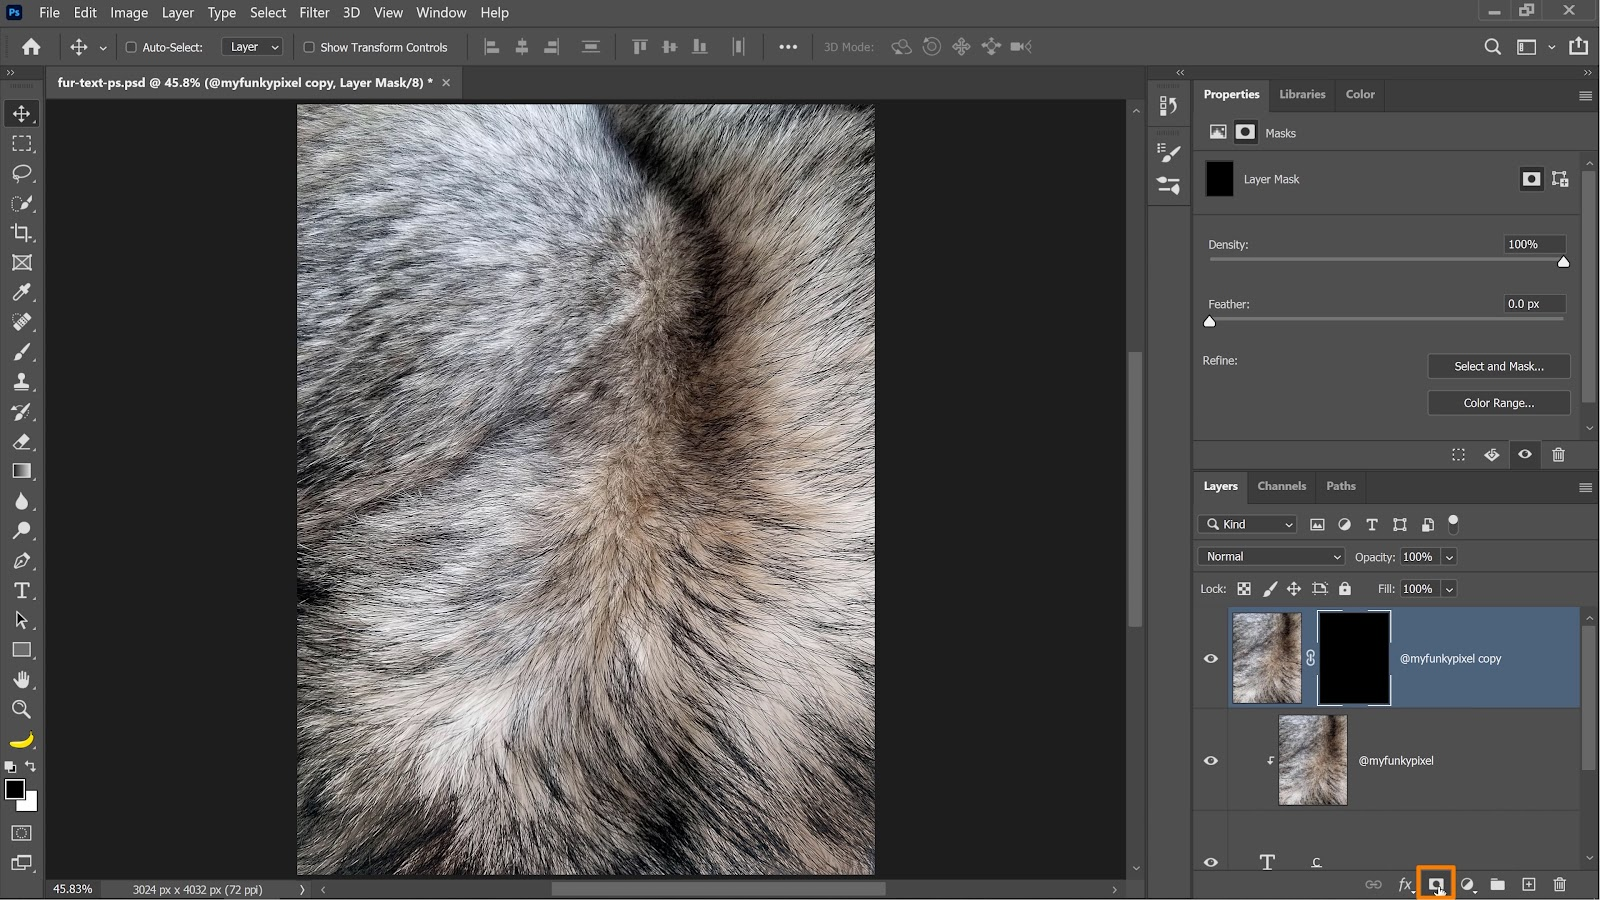 Enable the duplicated fur image layer and hide it by pressing Alt (Windows) or Option (macOS) as you press on the Layer Mask icon to create a black layer mask